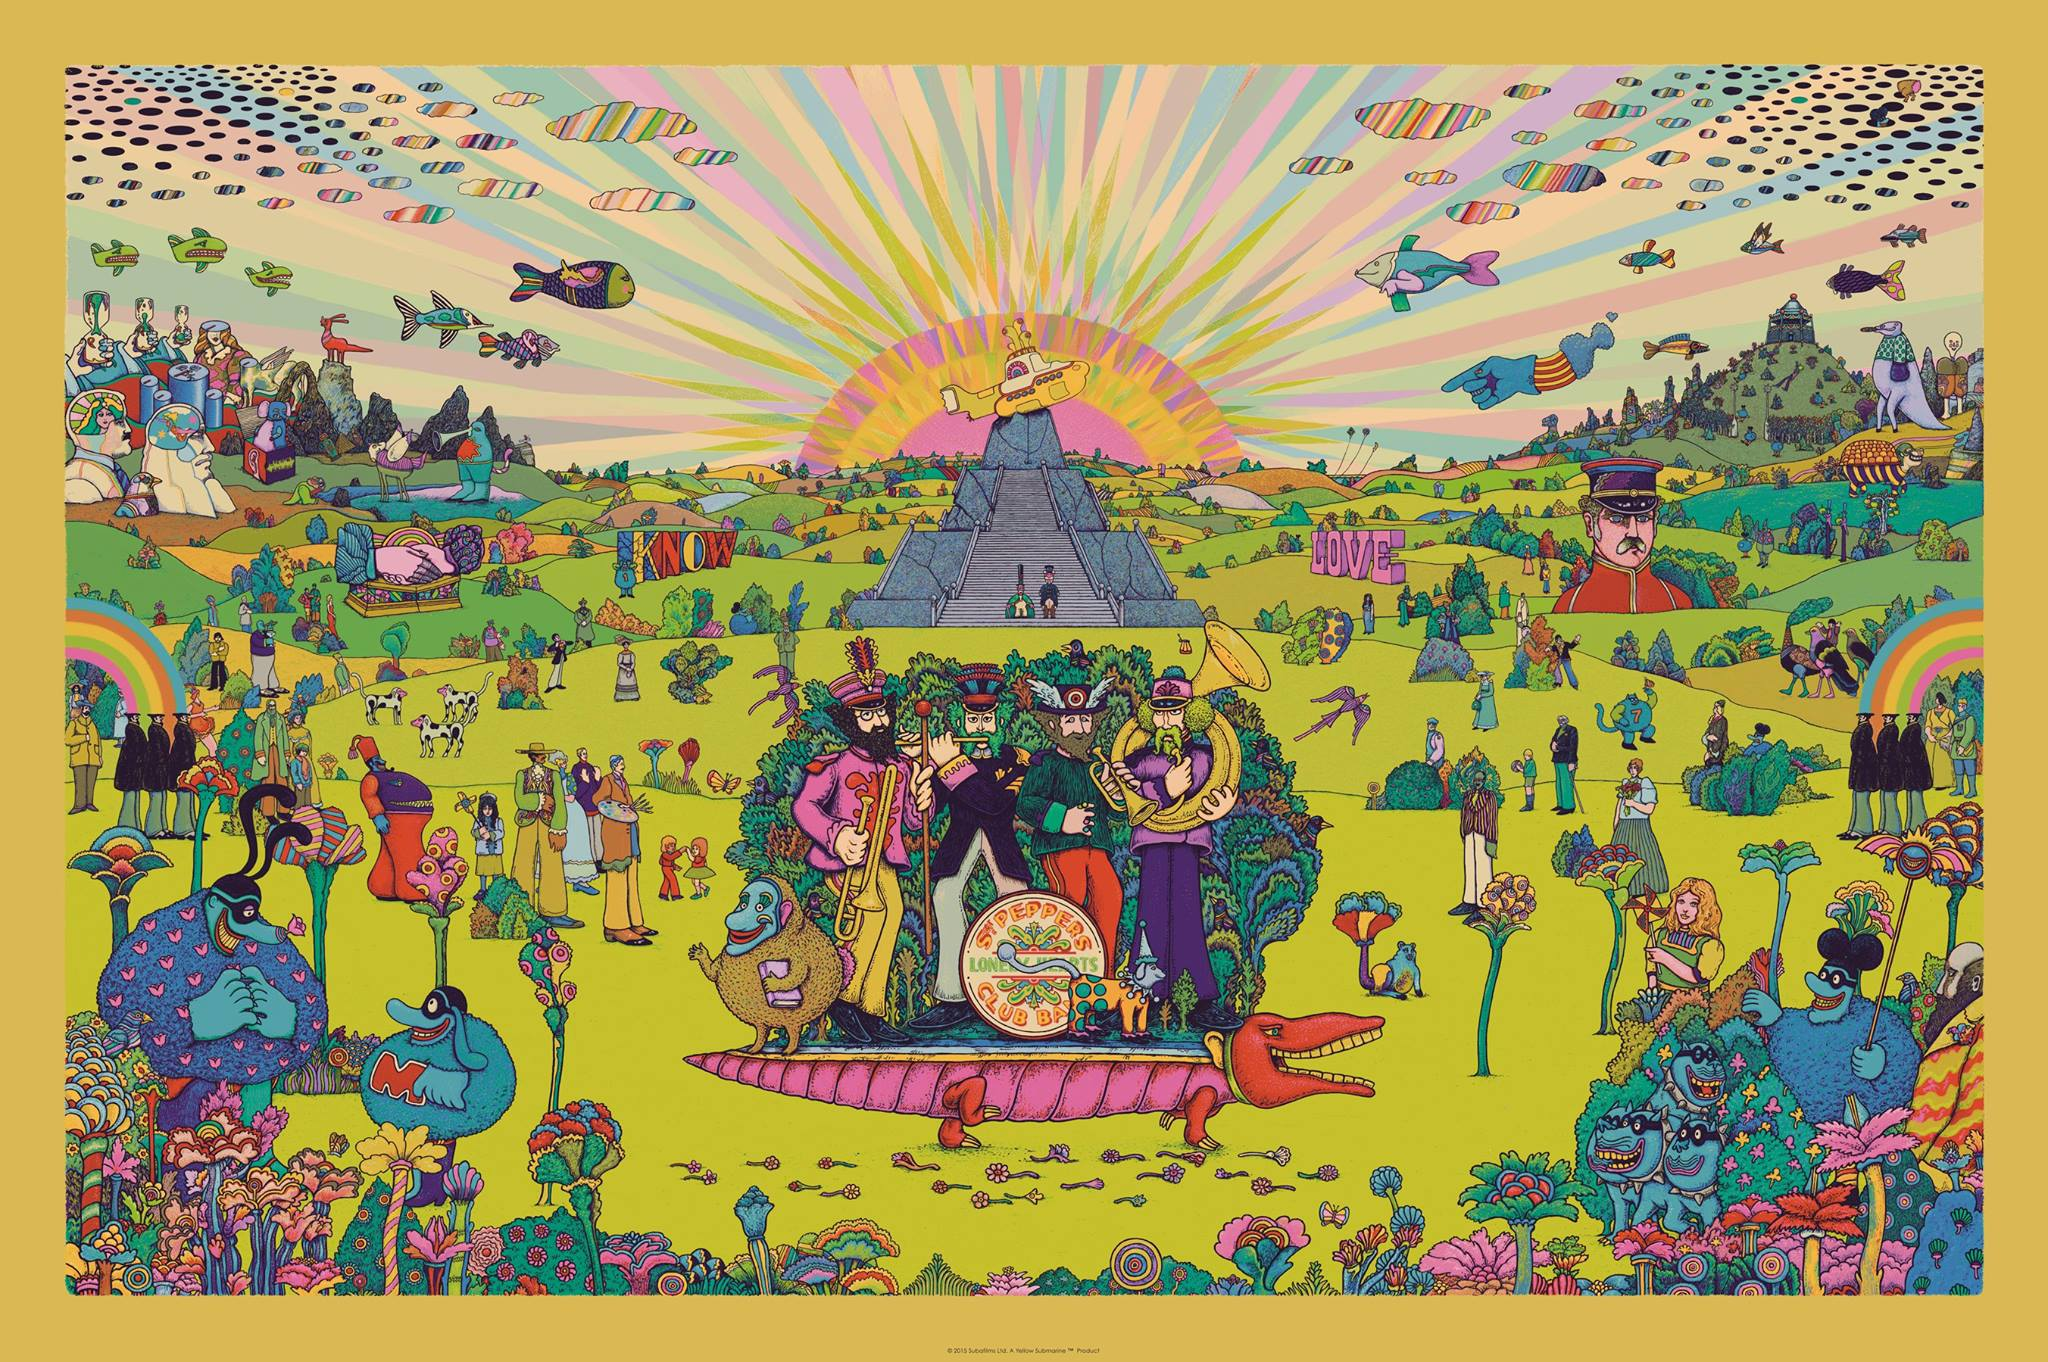 """Pepperland"" by Marq Spusta.  24"" x 36"" 10-color Screenprint.  Ed of 150 S/N.  $125 (Gold variant)"